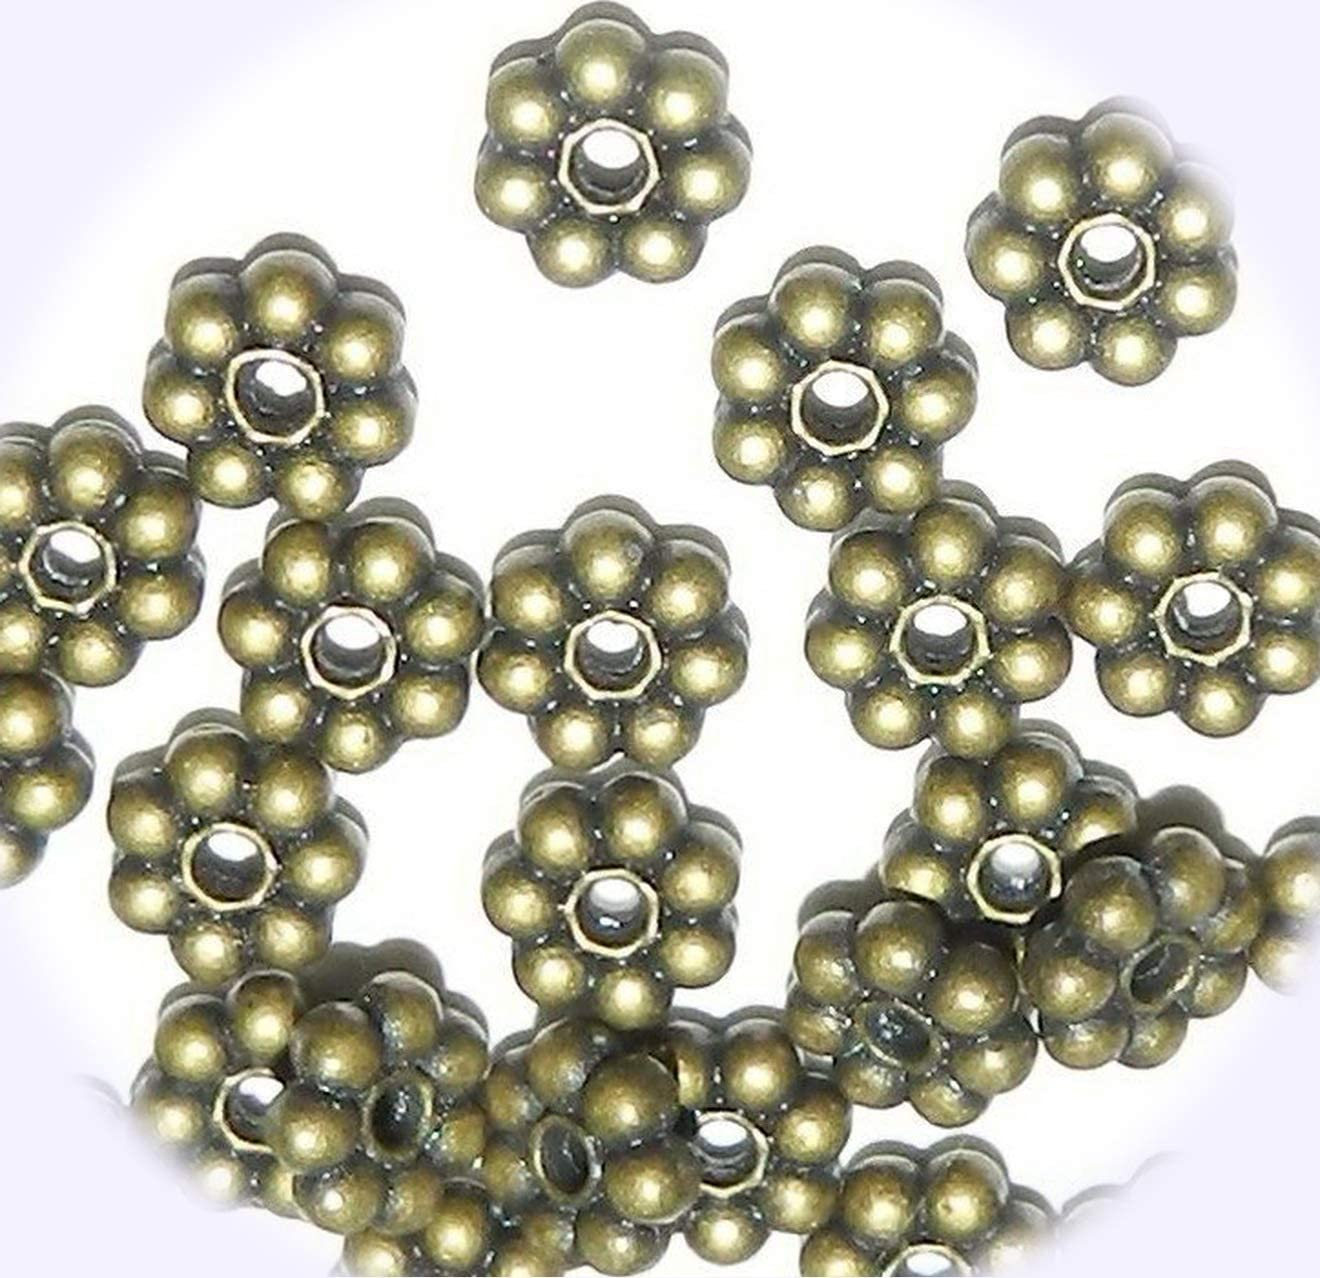 New Antiqued Brass 6mm Dotted Daisy Flower Rondelle Metal Spacer Jewelry-Making Beads 24pc DIY Craft Supplies for Handmade Bracelet Necklace